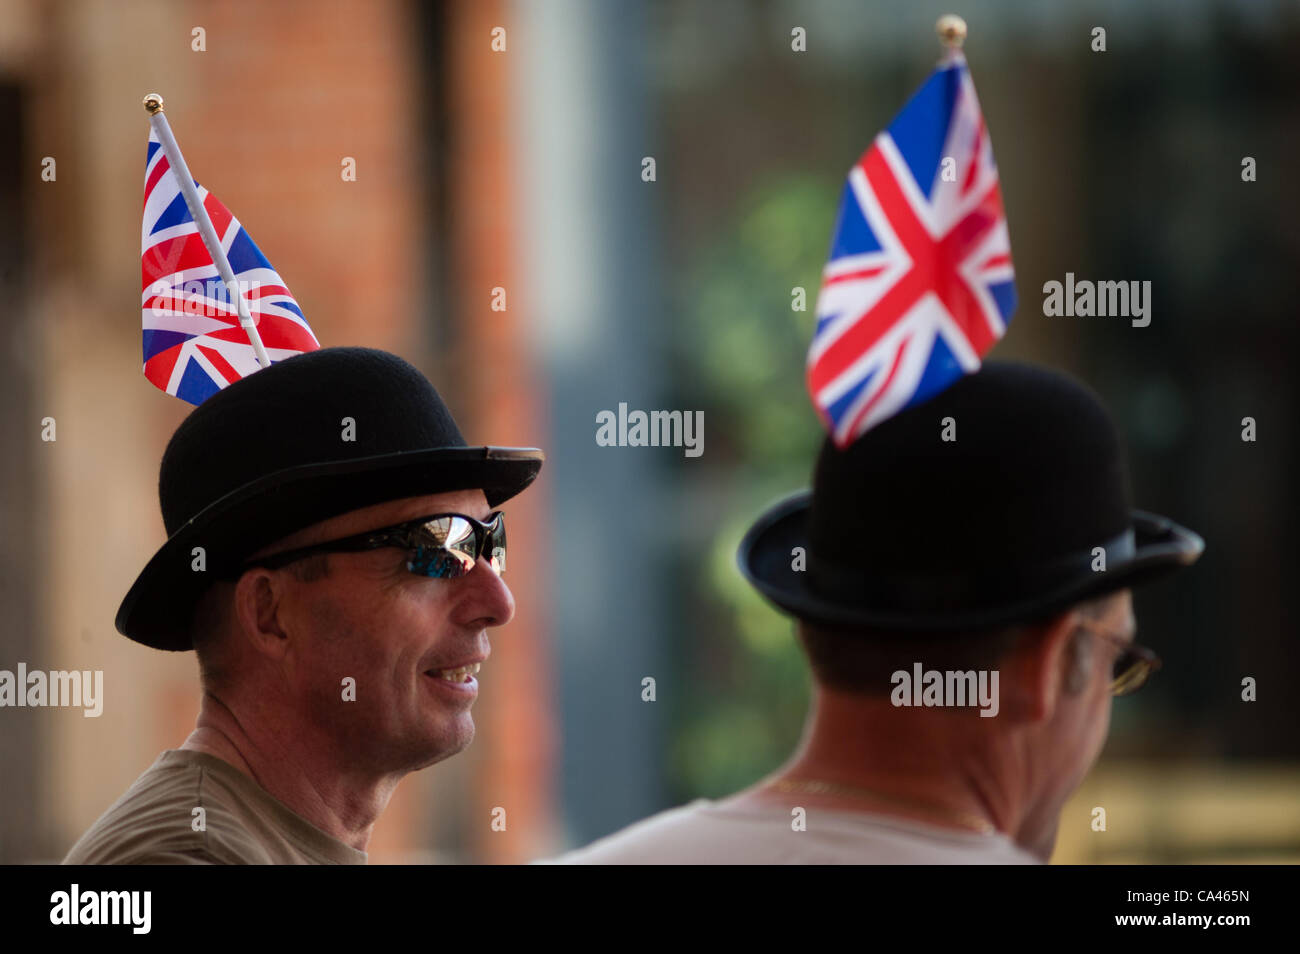 People celebrate the Queen's diamond jubilee at street parties in Aberystwyth Wales UK. June 4 2012 - Stock Image